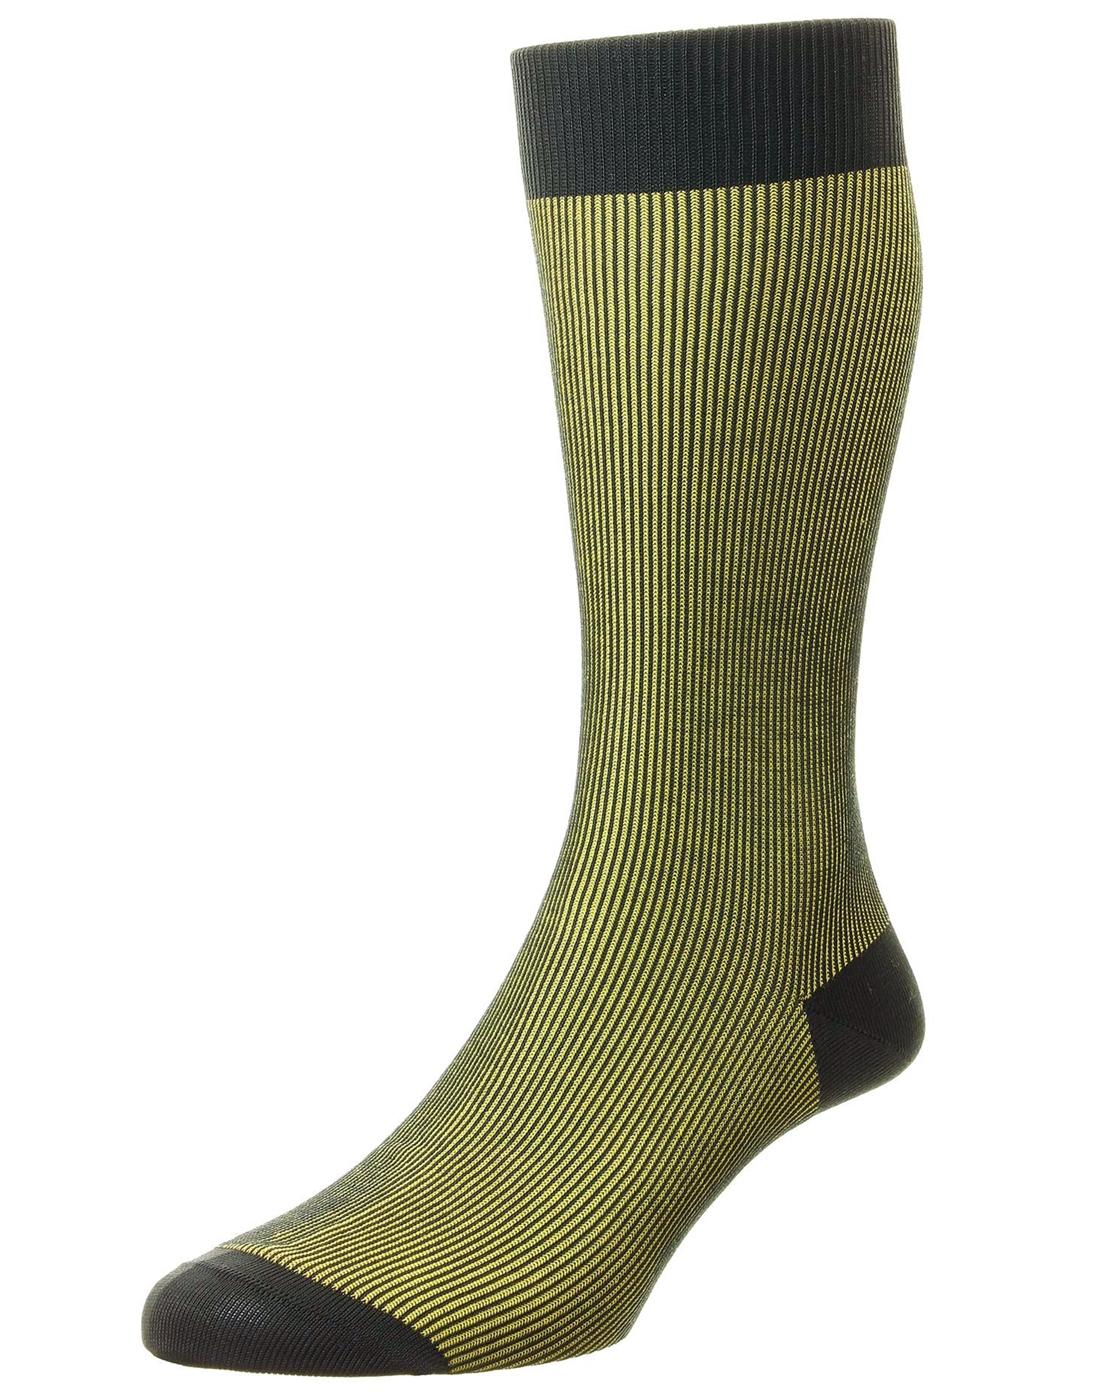 + Santos PANTHERELLA Men's Tonic Effect Socks GY